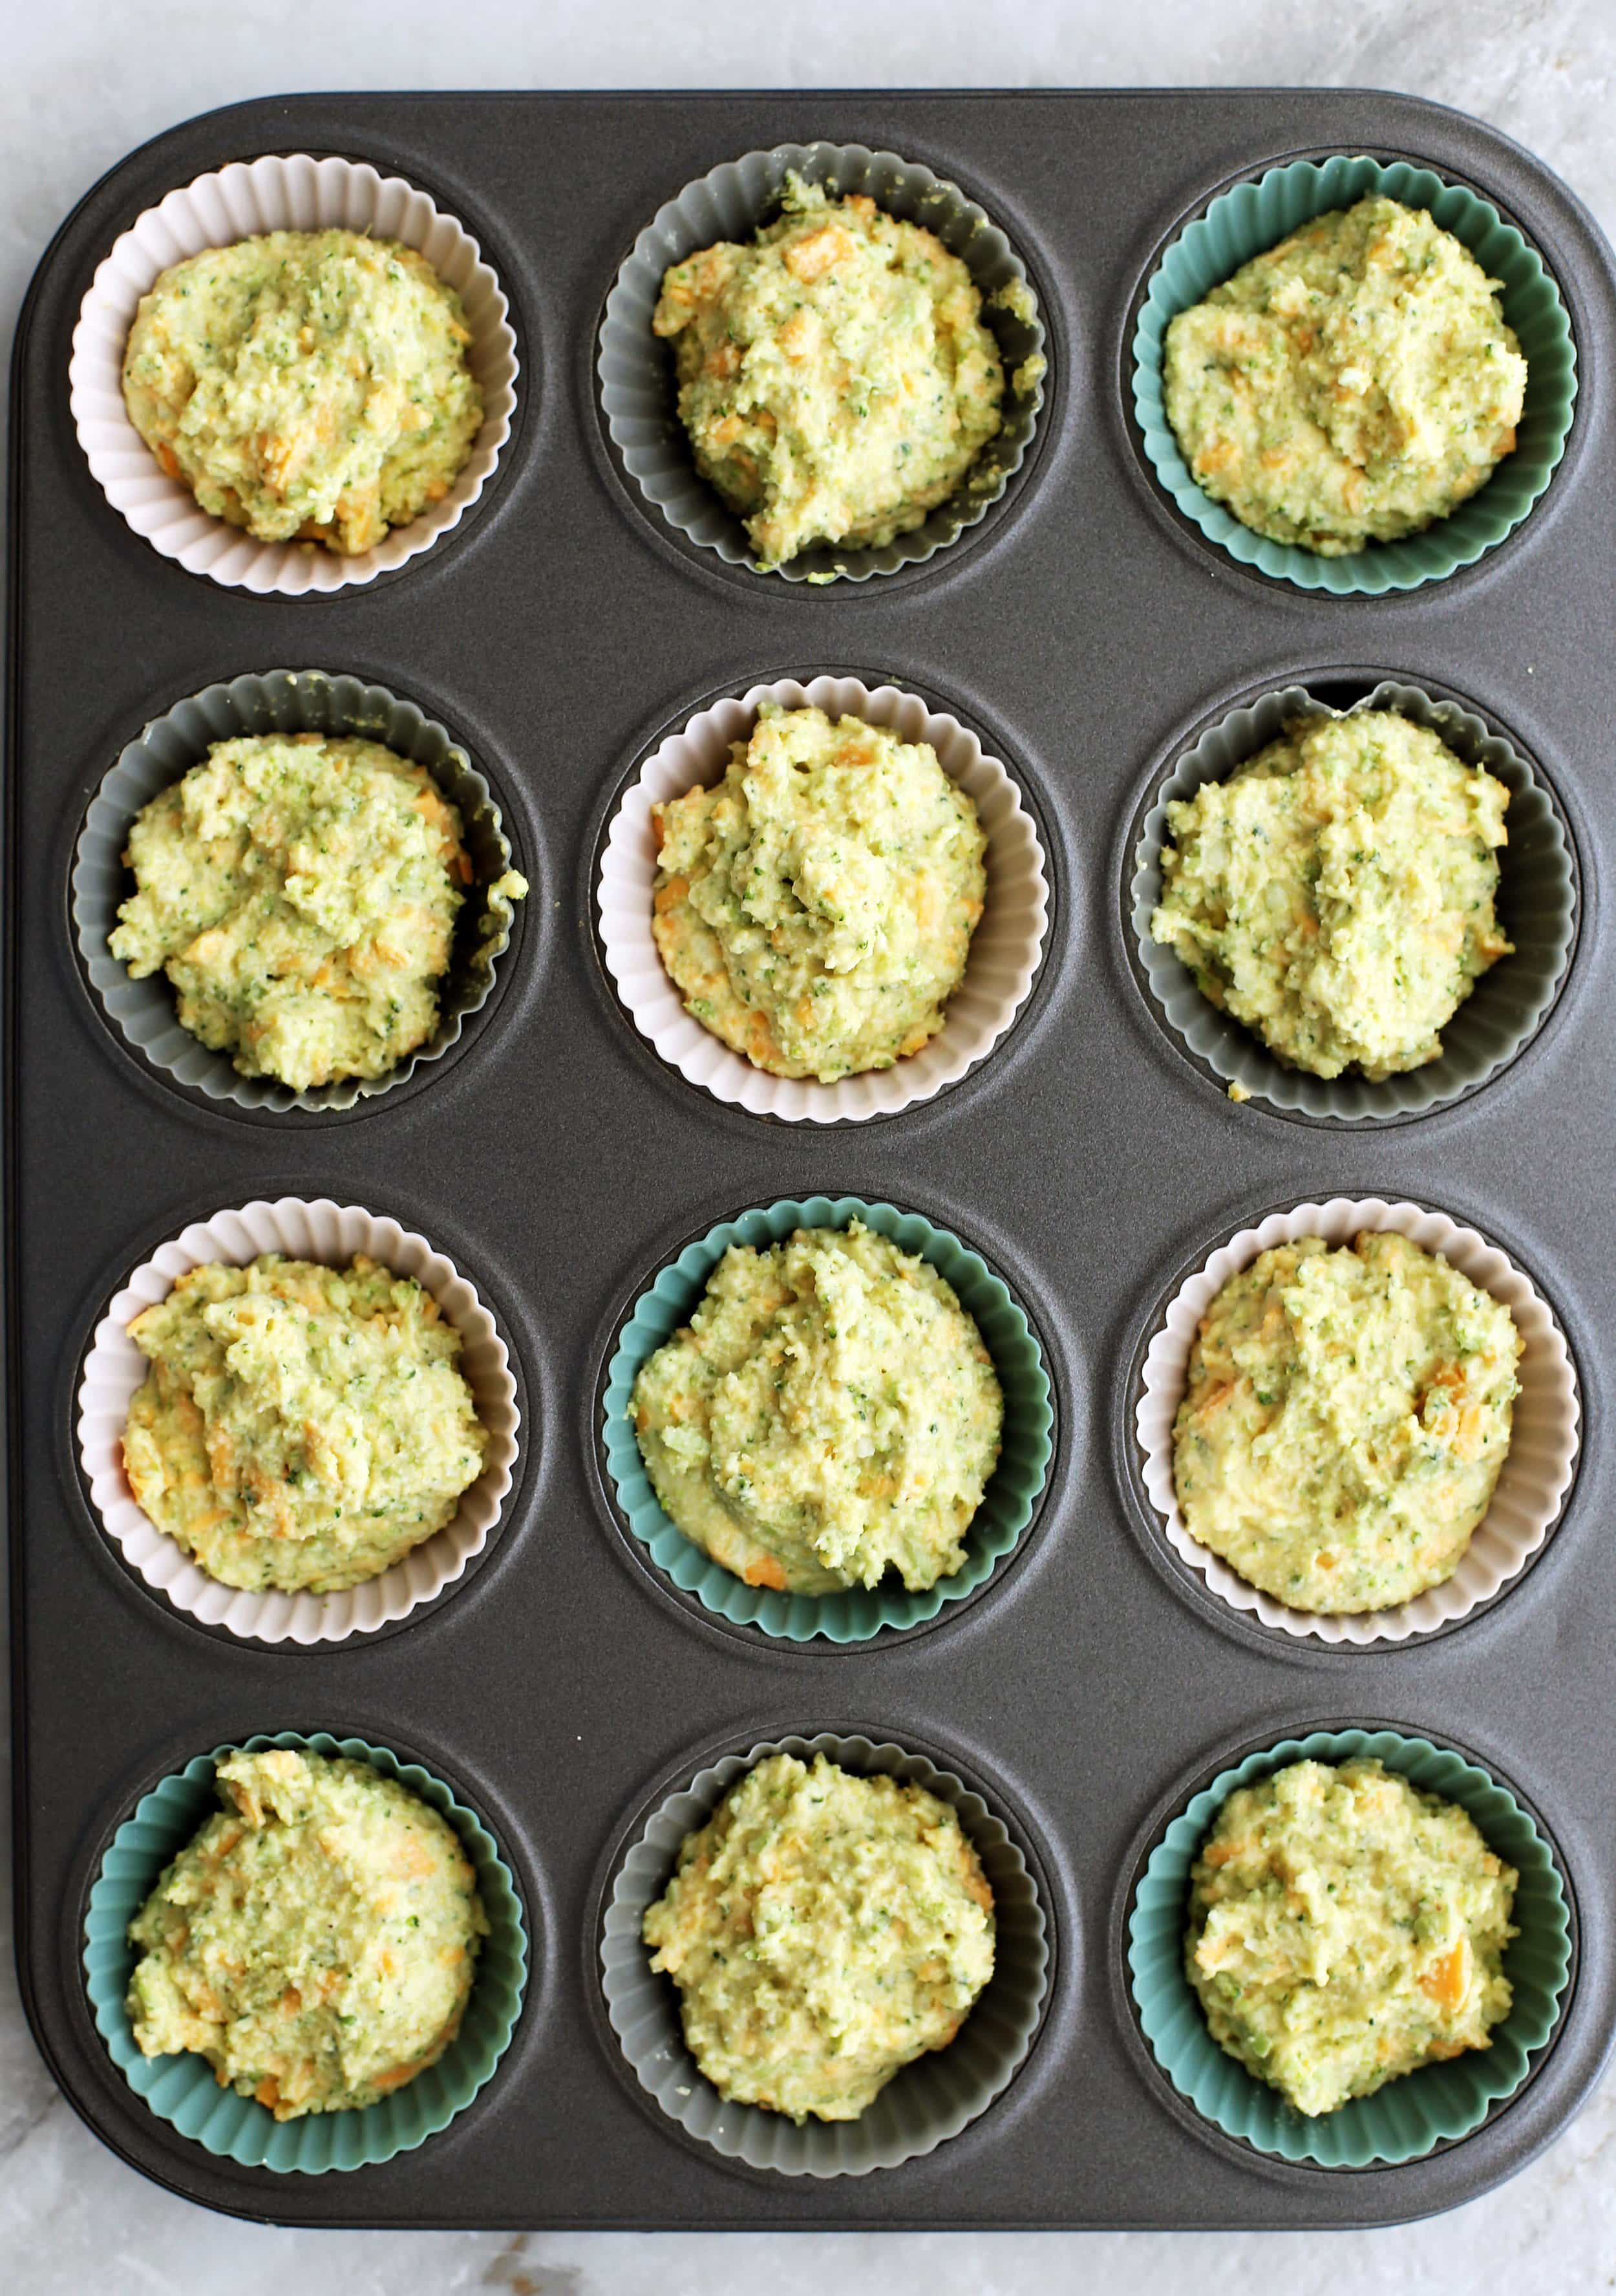 Broccoli Cheddar Cornbread Muffin batter scooped into a muffin pan.